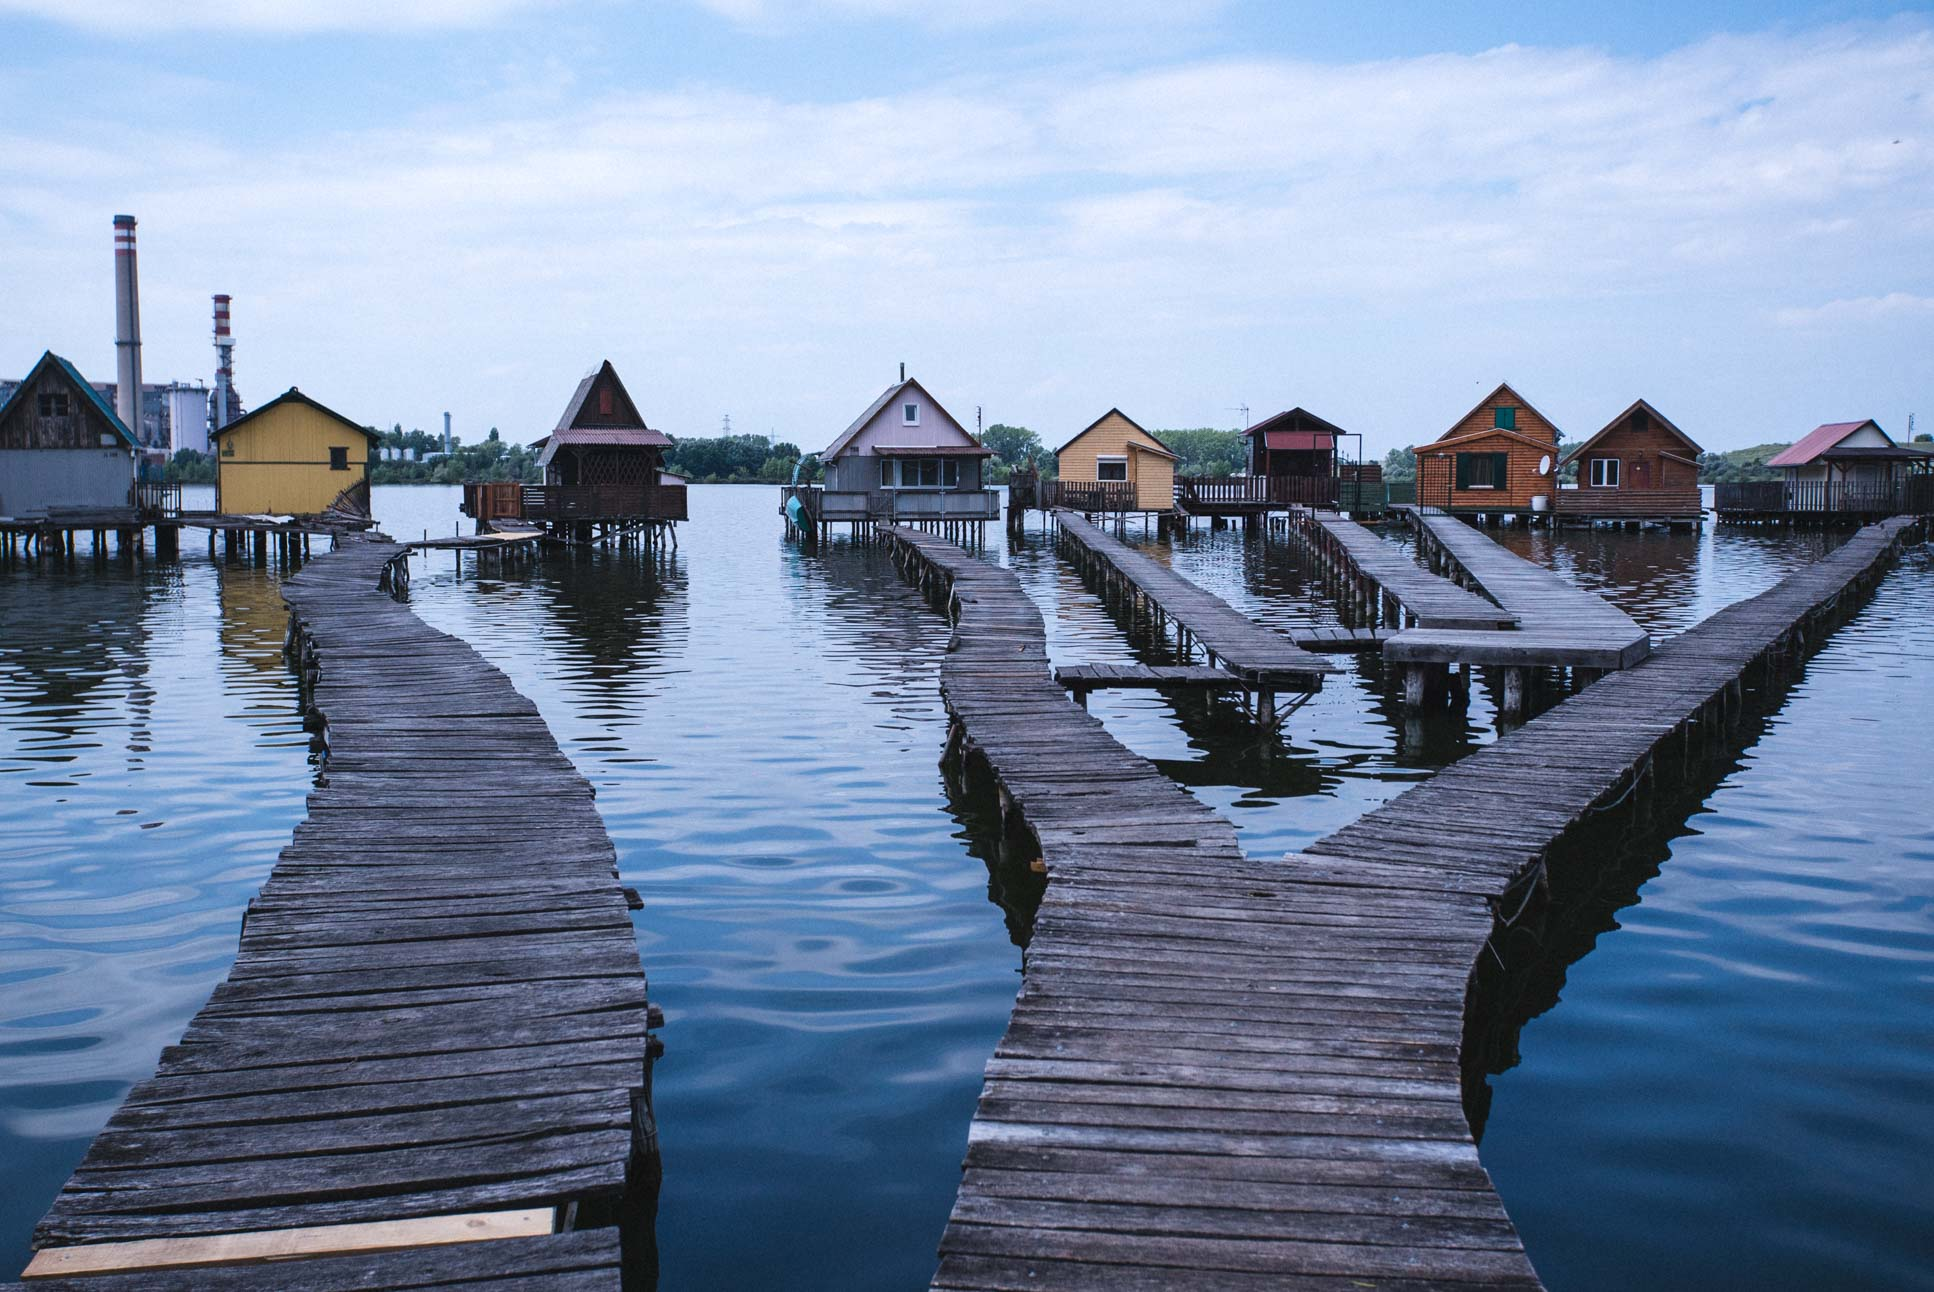 Photo by Pascal Sommer - The Bokodi Floating Village near Oroszlány